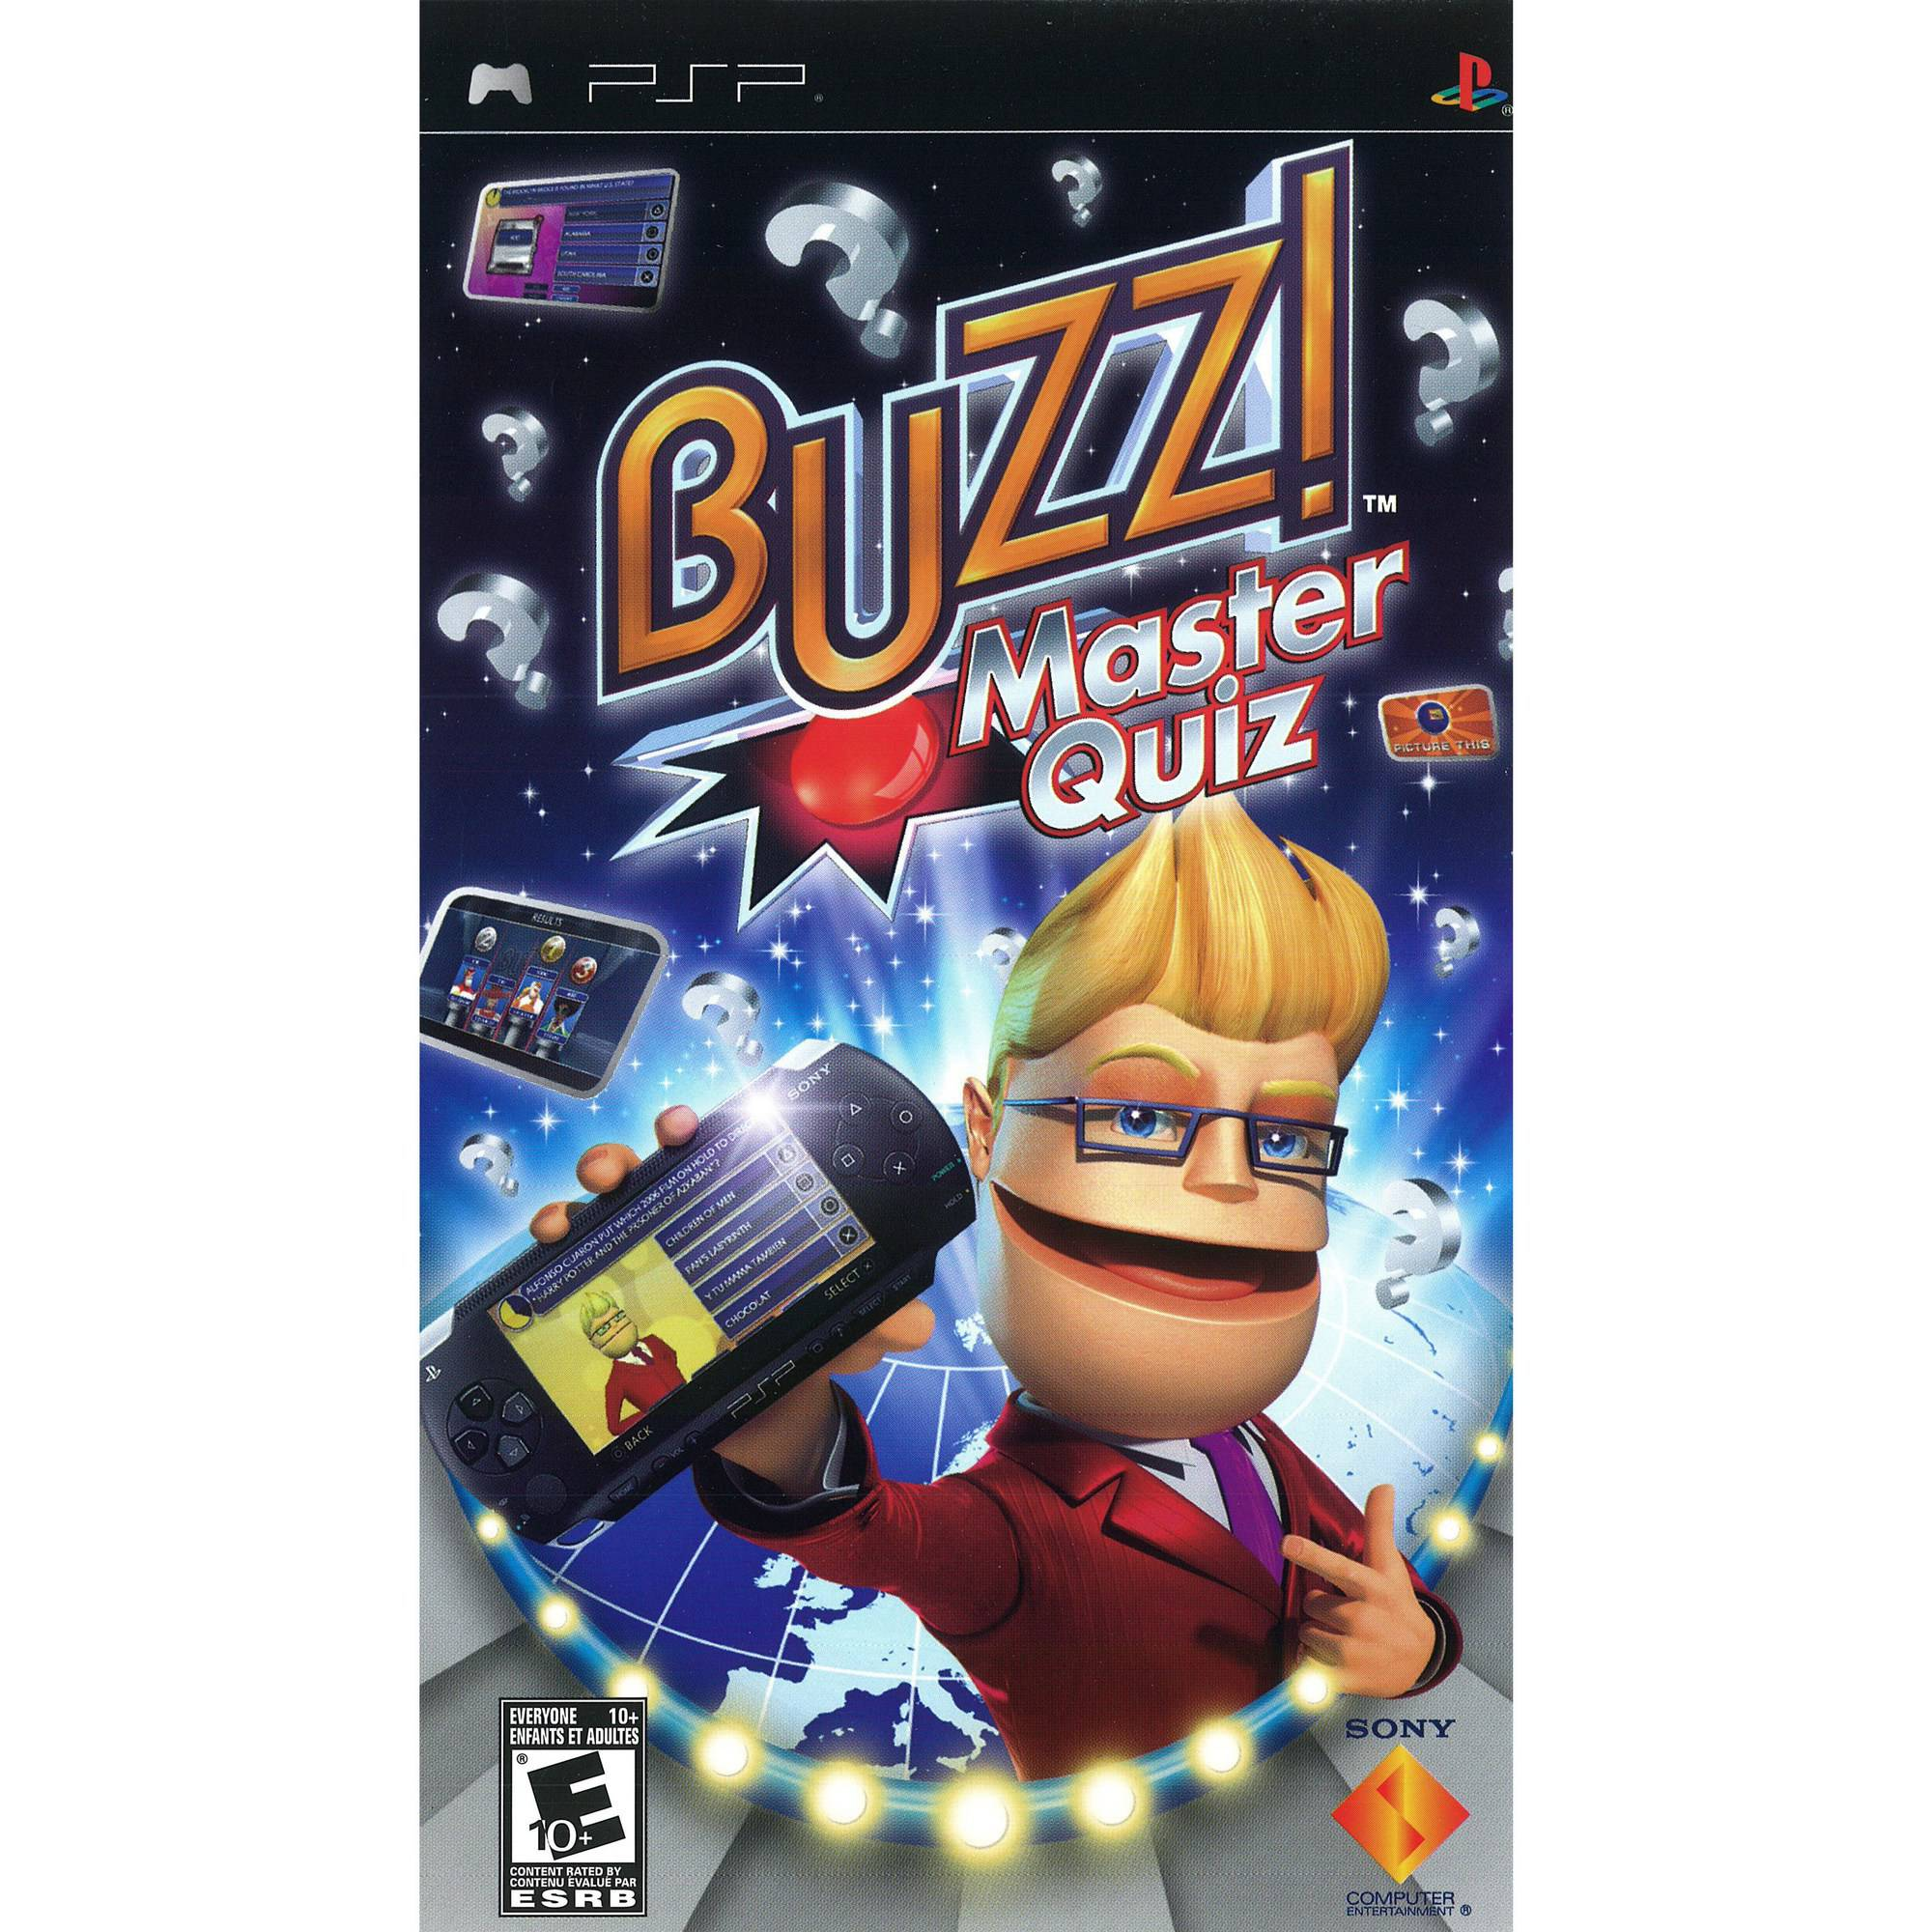 Buzz! Master Quiz (PSP) - Pre-Owned